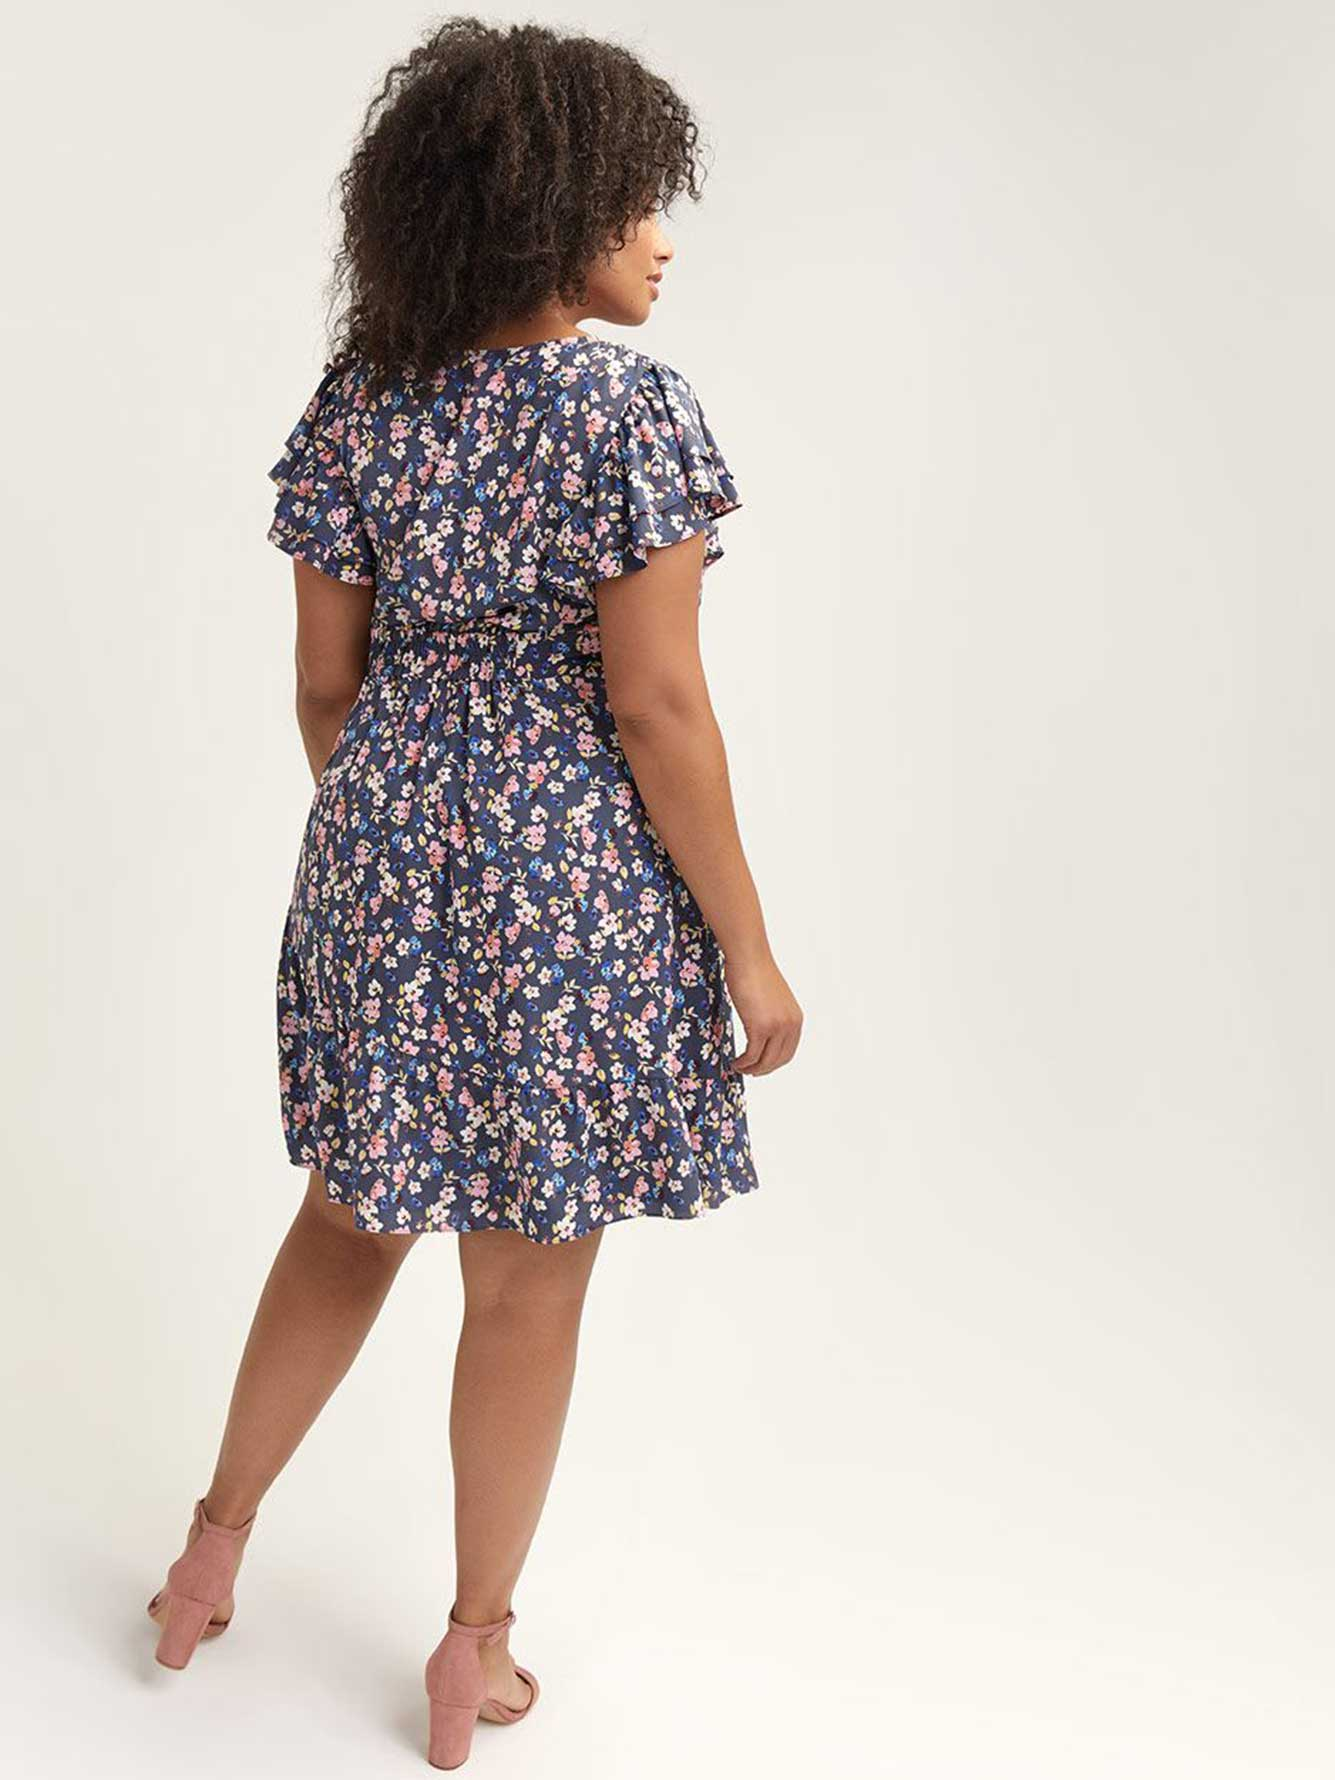 Faux-Wrap Pierce Dress - RACHEL Rachel Roy